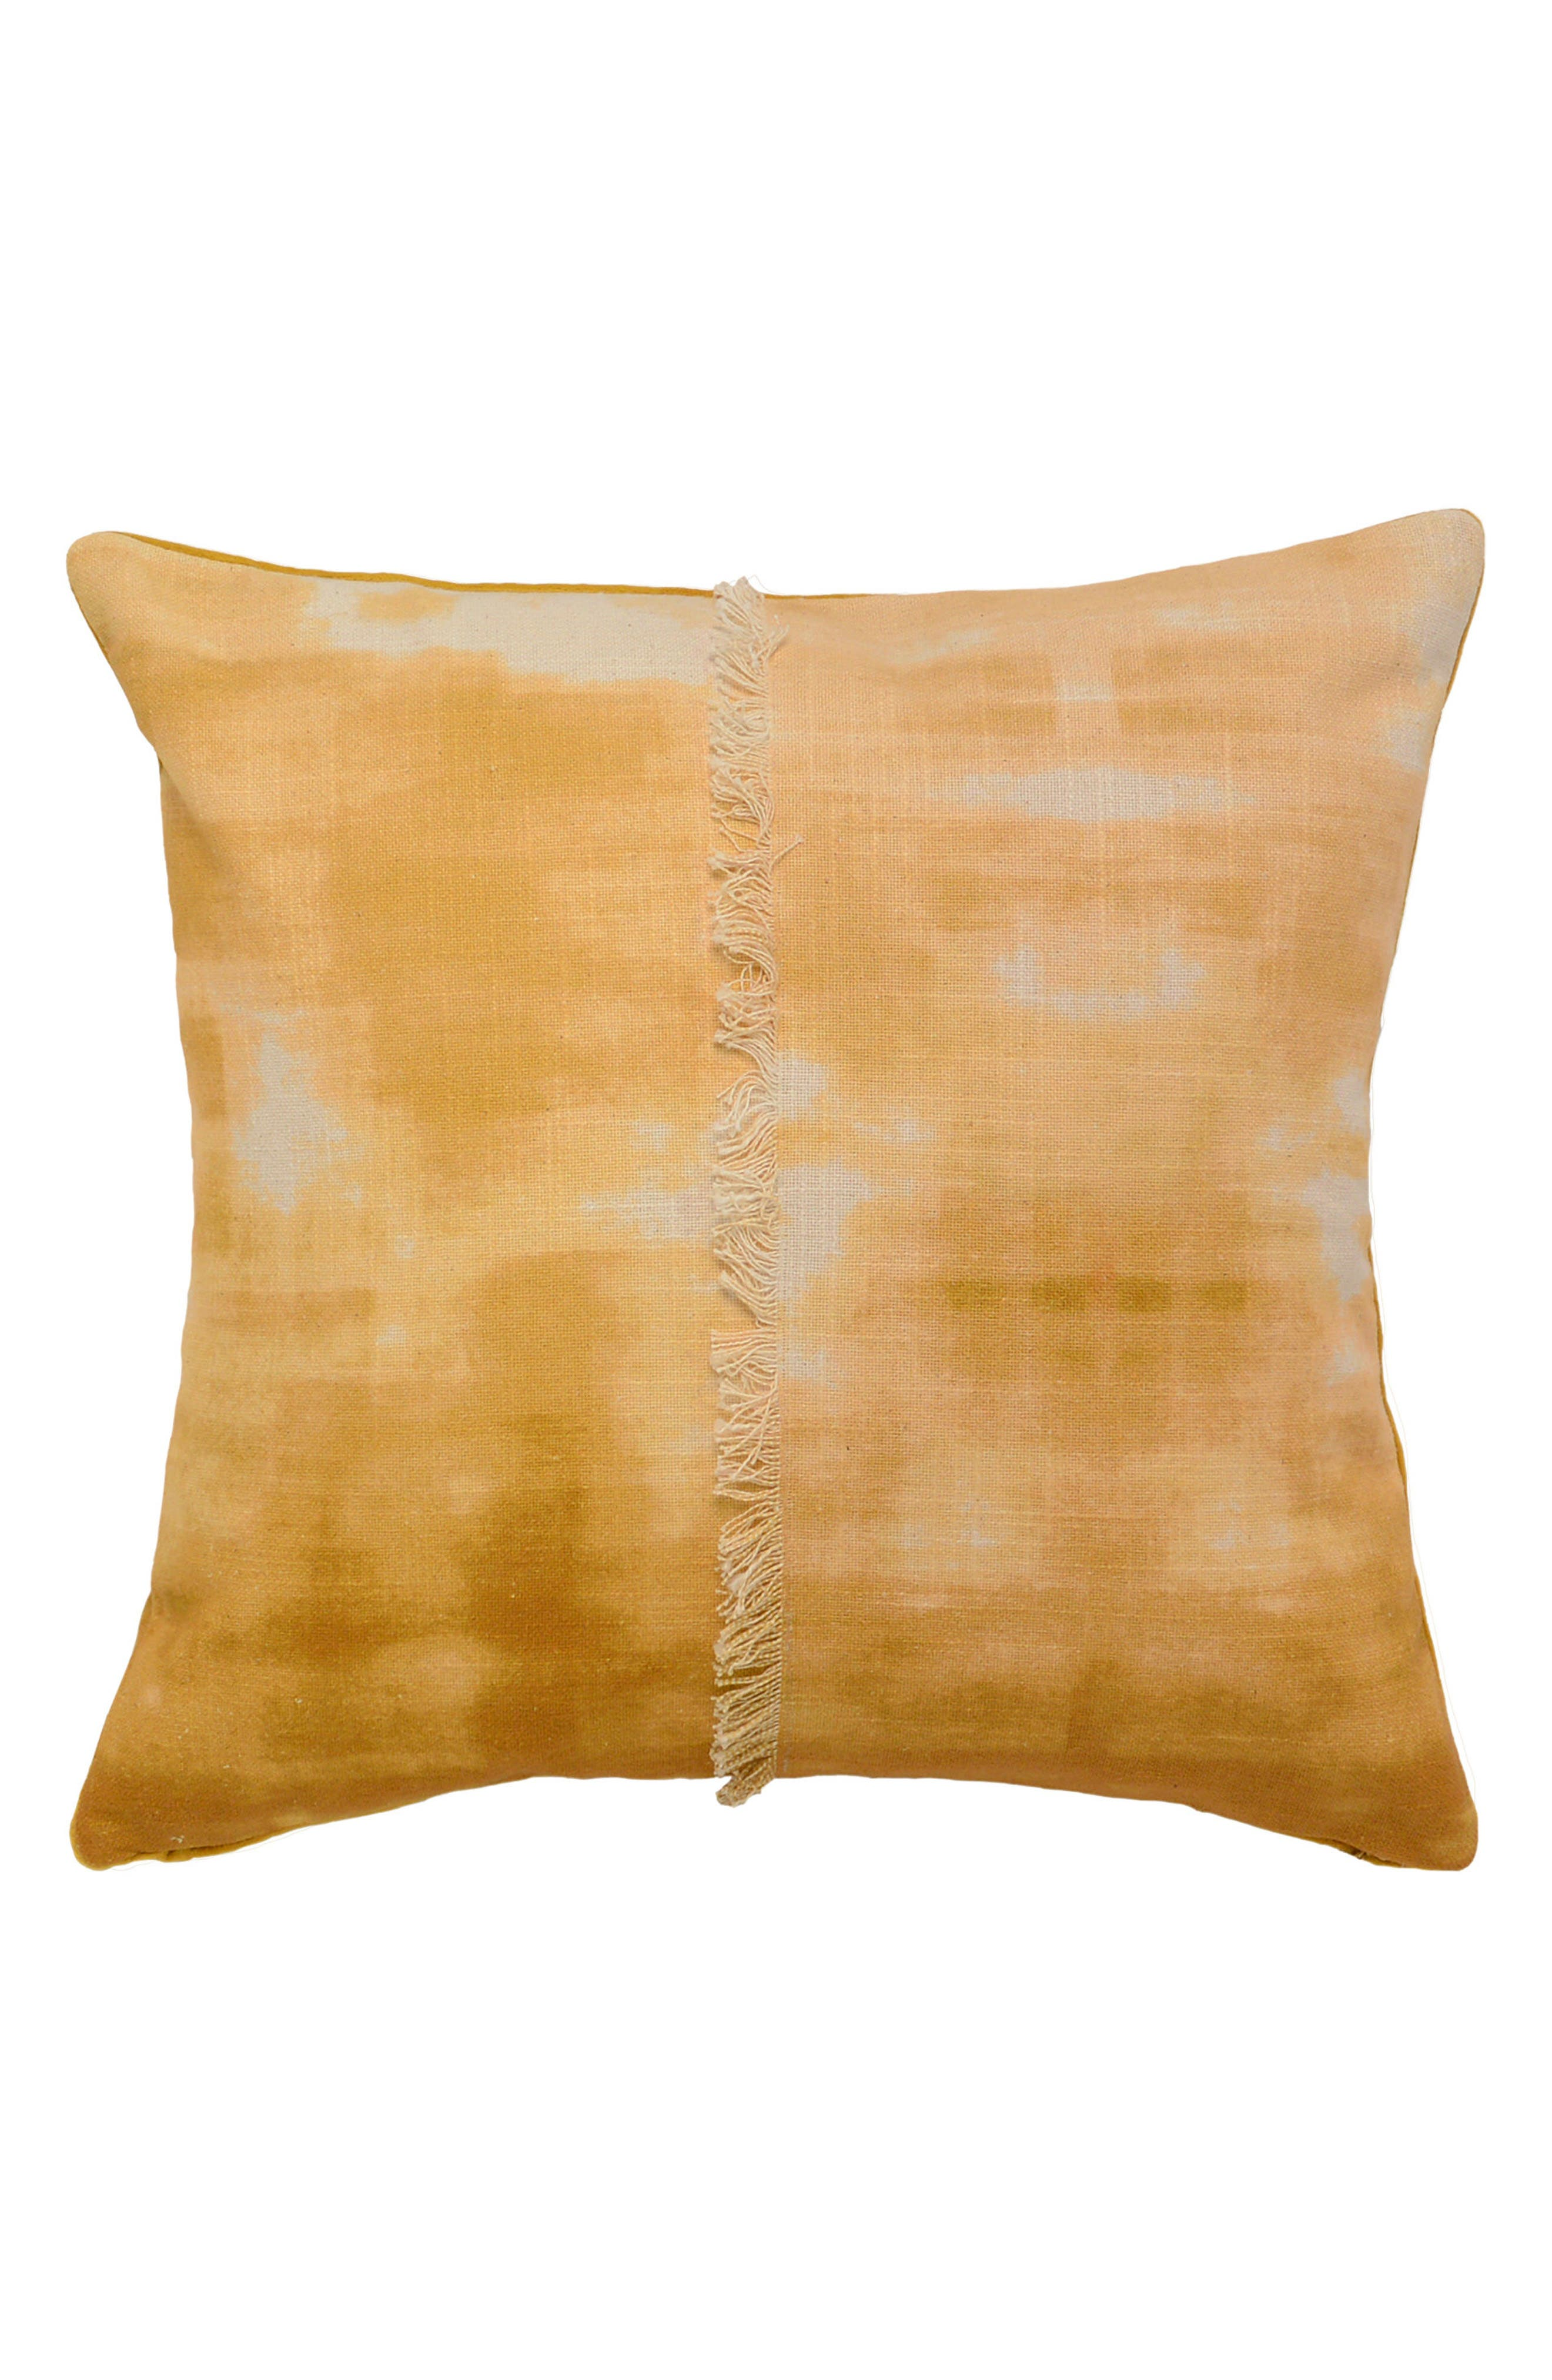 Kino Accent Pillow,                         Main,                         color, 700